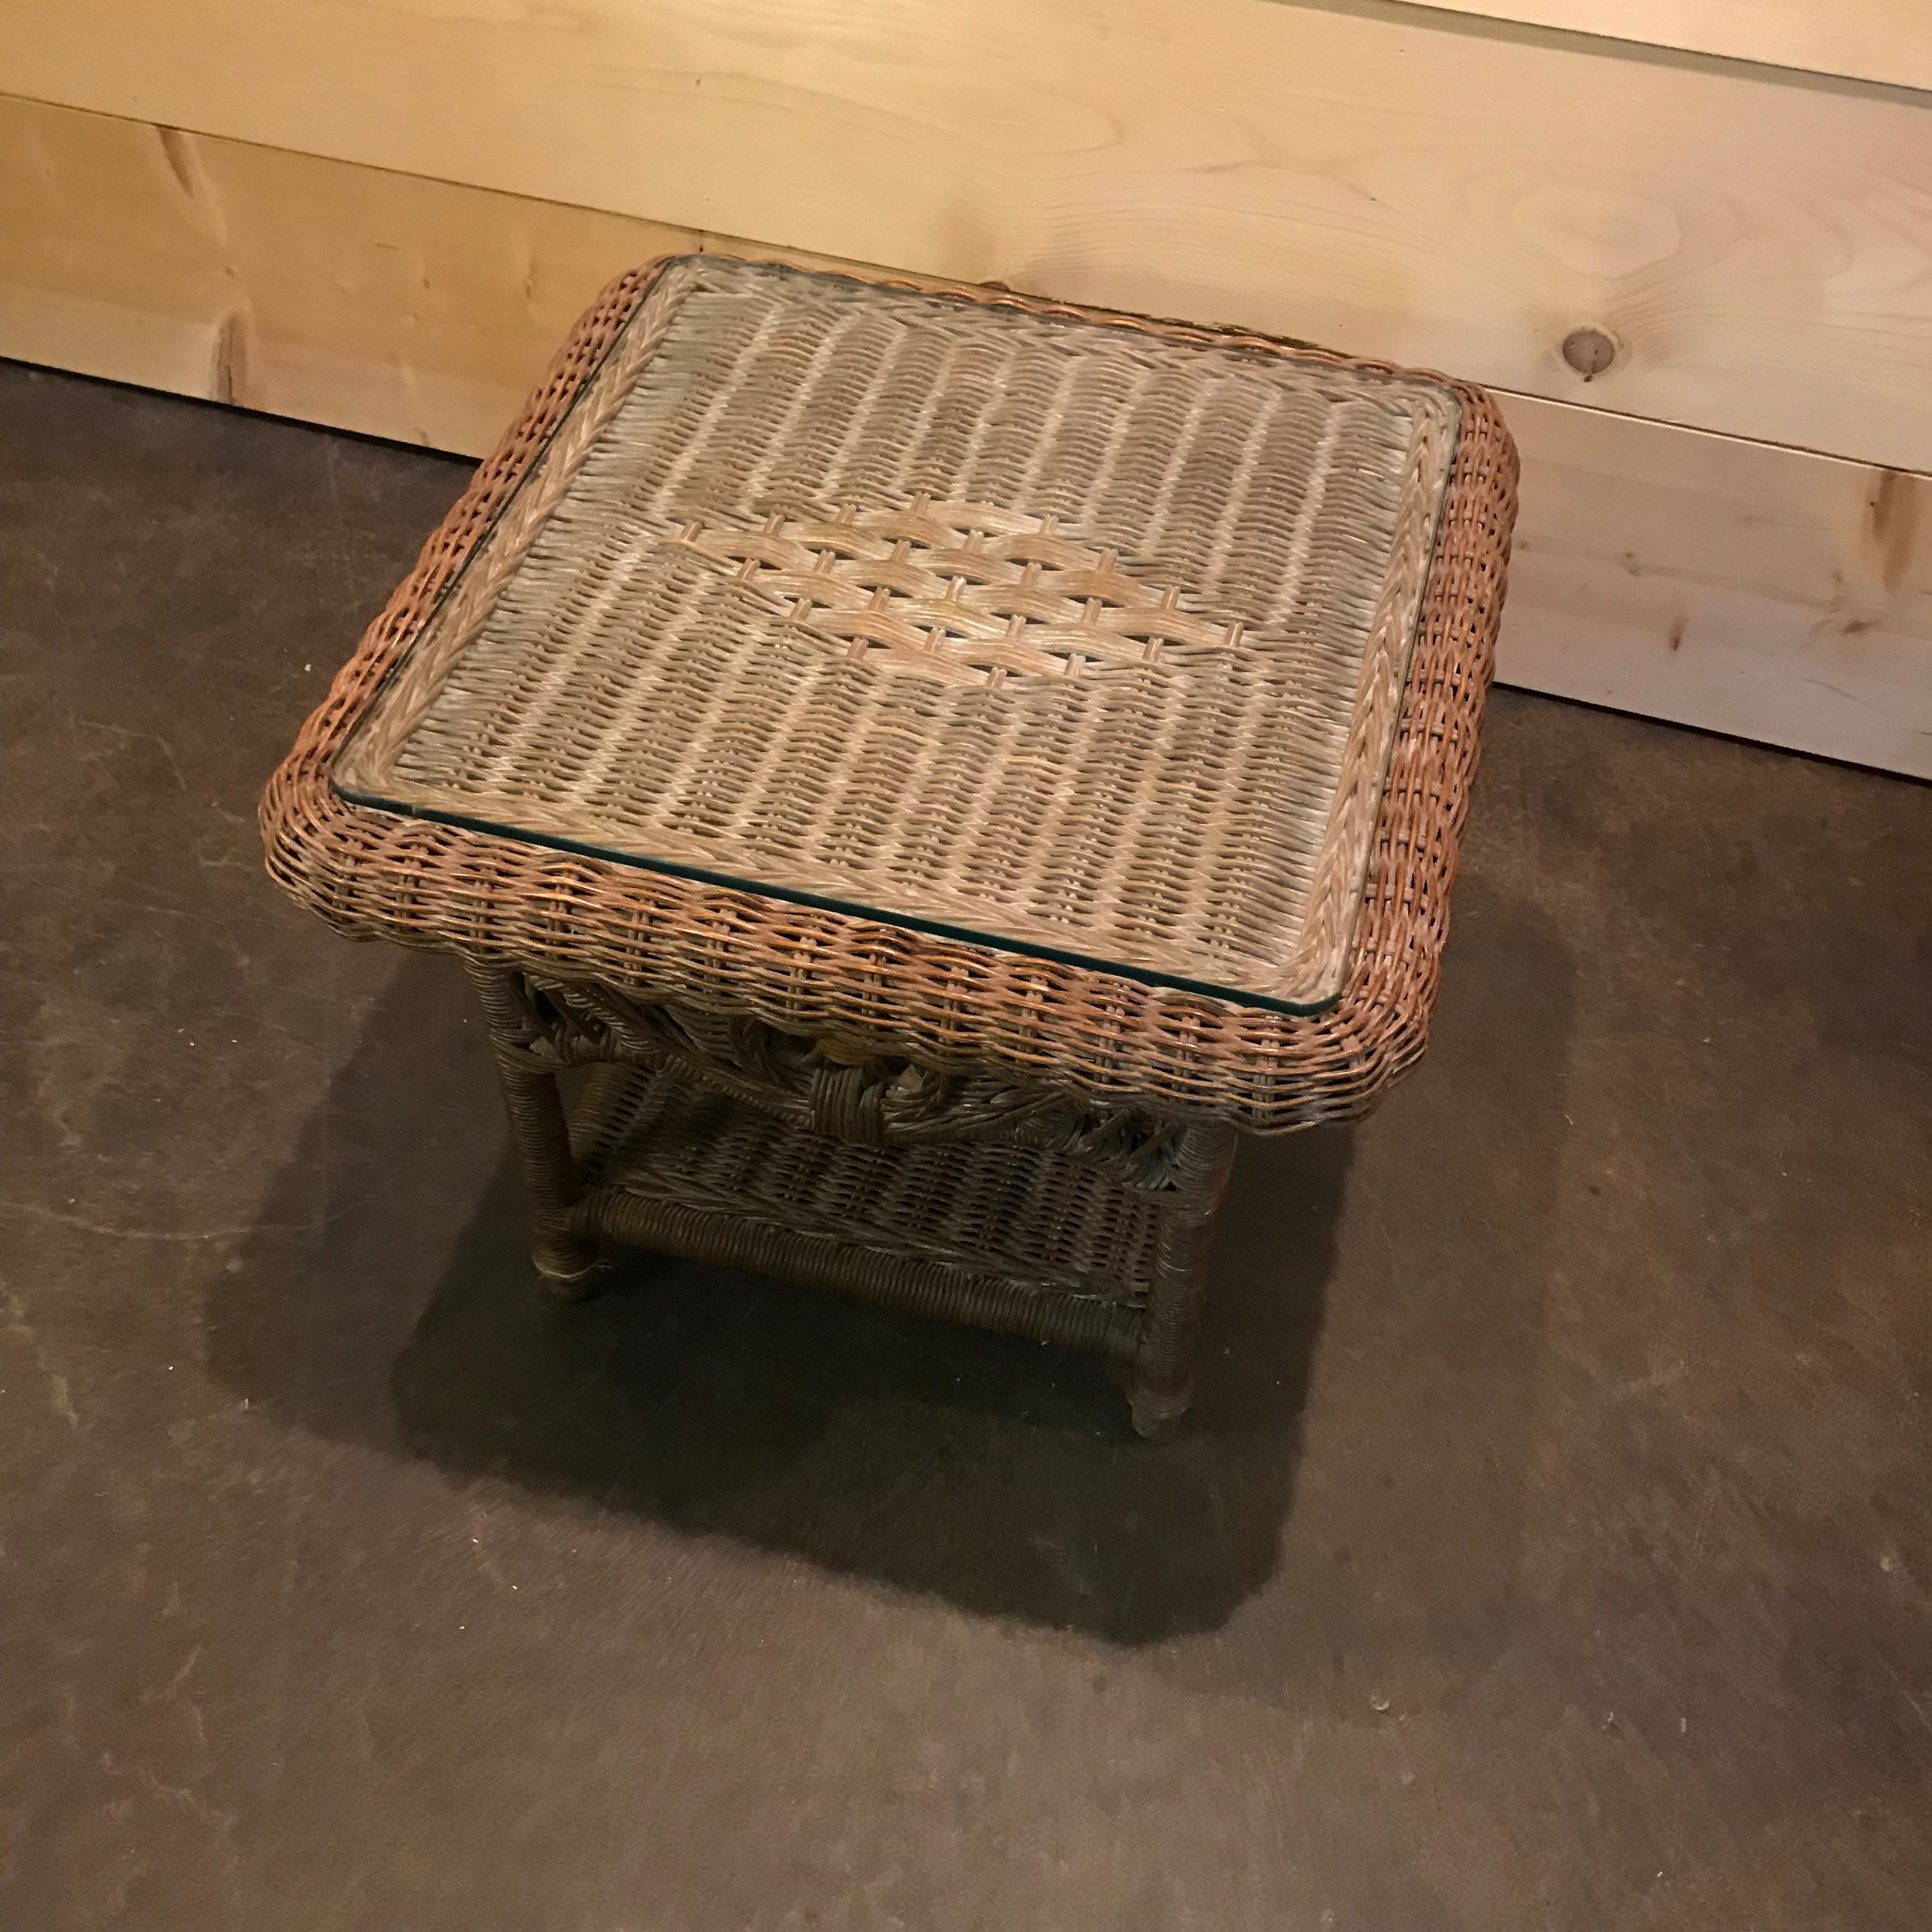 Wicker side table with patterned top and bottom shelf. Vintage furniture rental